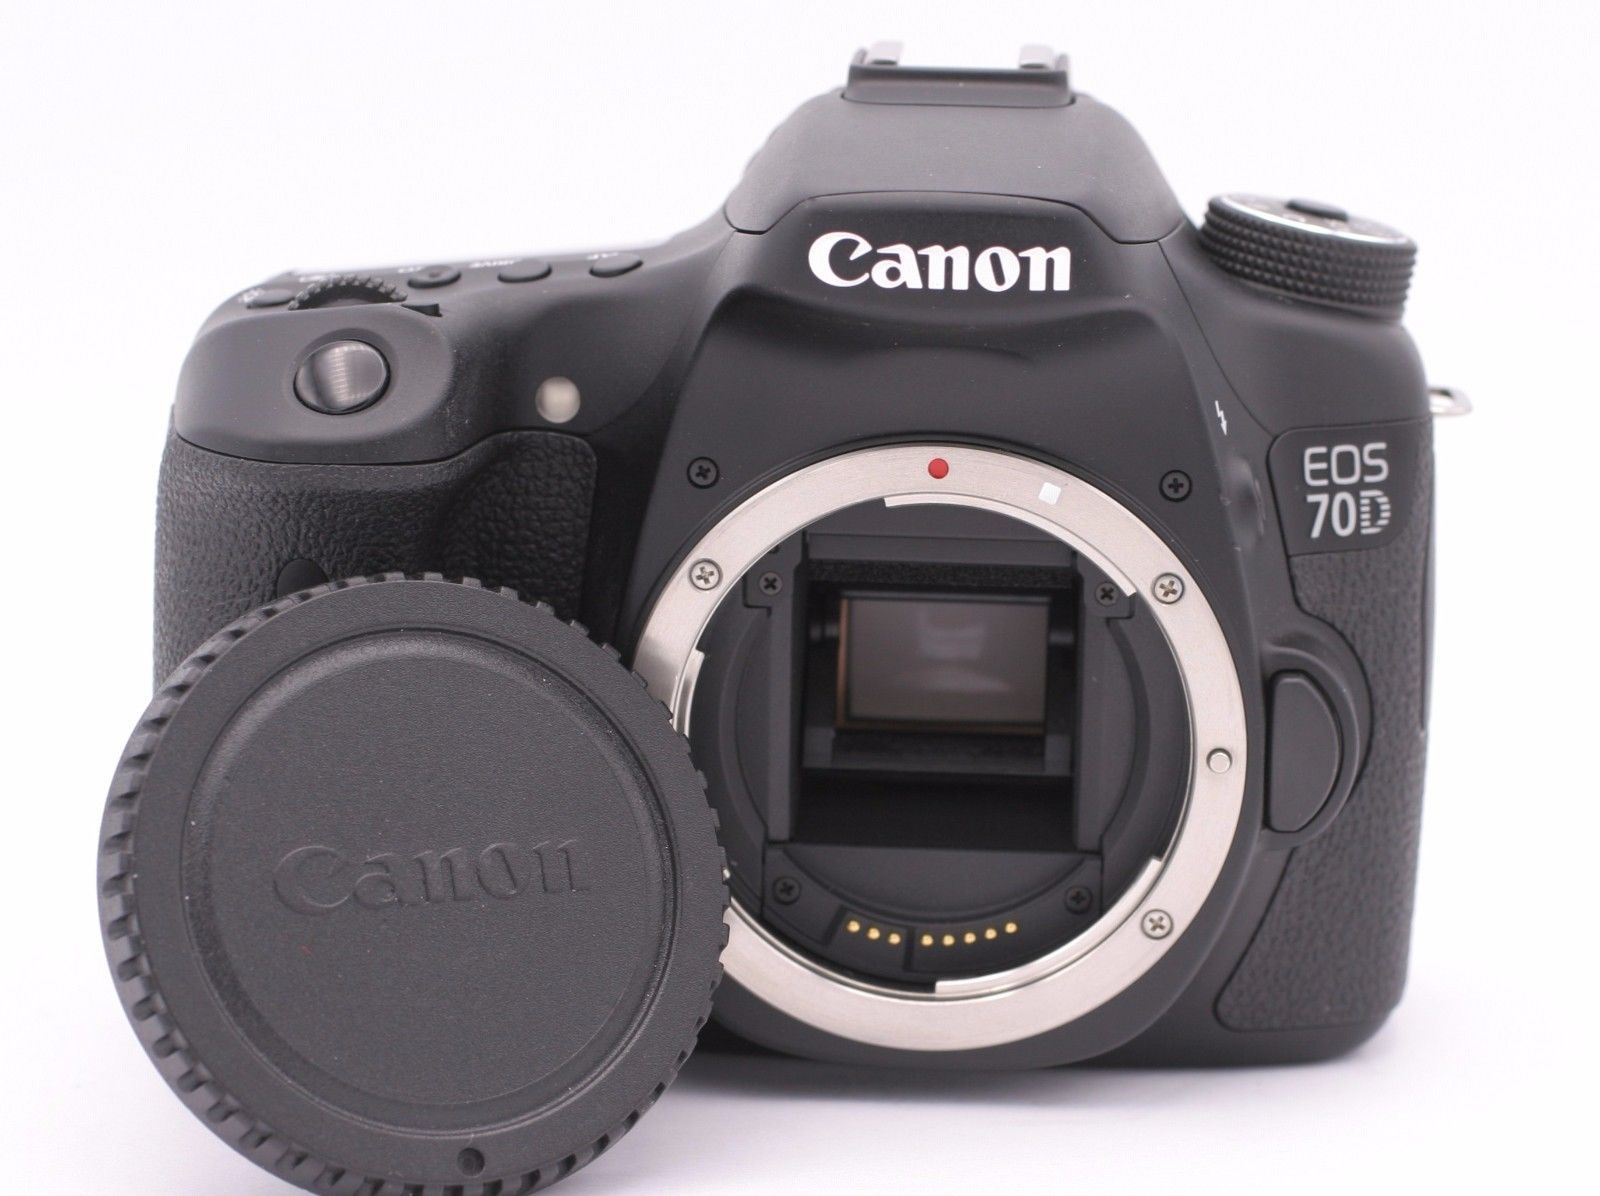 Canon EOS 70D 20.2MP Digital SLR Camera Black (Body Only) Shutter Count  2a62c7528d43